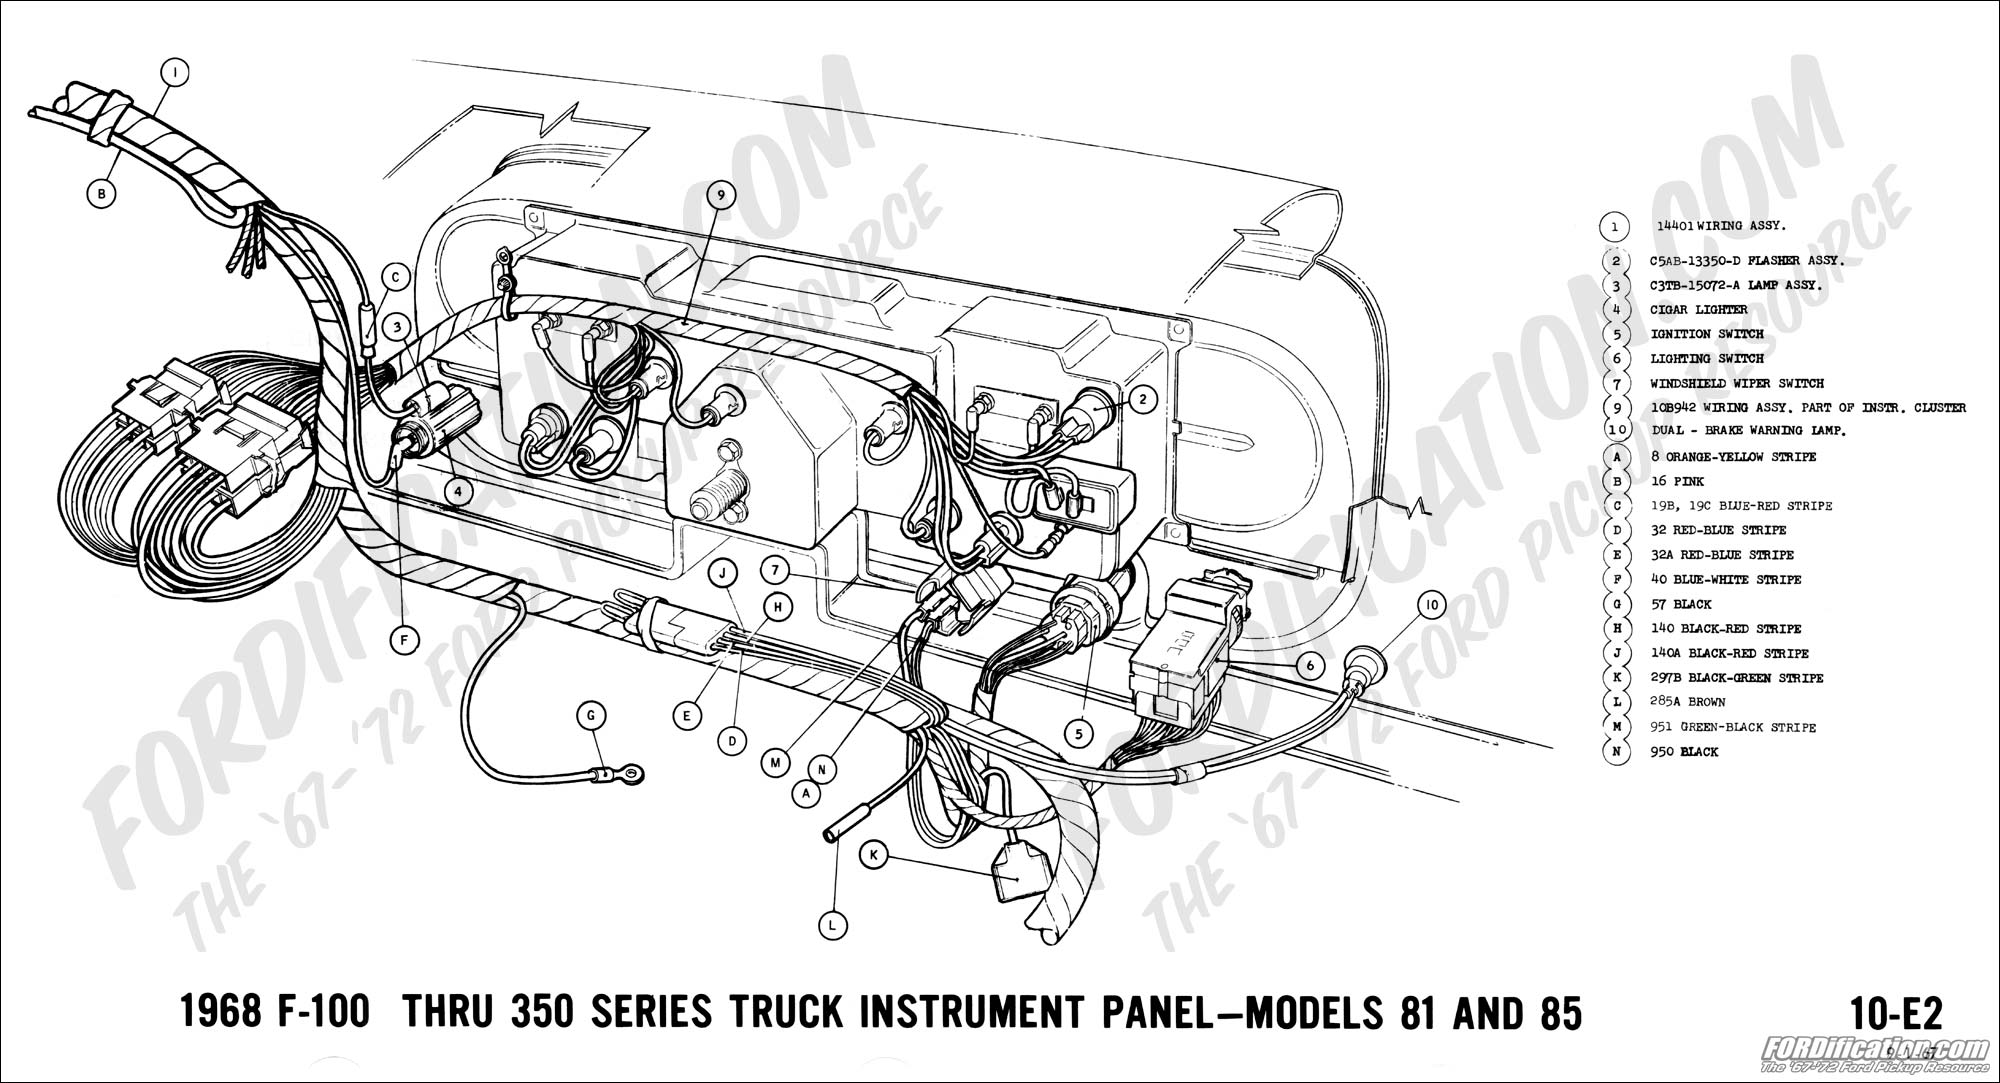 ... Manual - diagrams legend · 1968 F-100 thru F-350 instrument panel